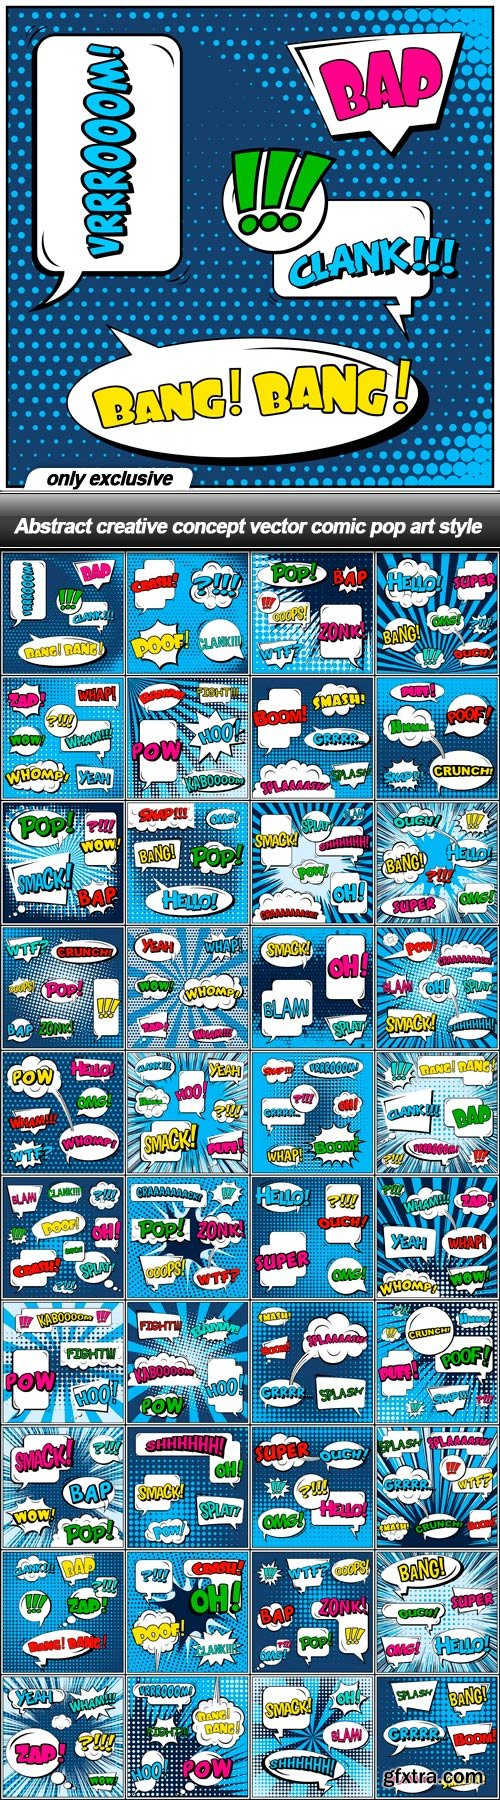 Abstract creative concept vector comic pop art style - 112 EPS